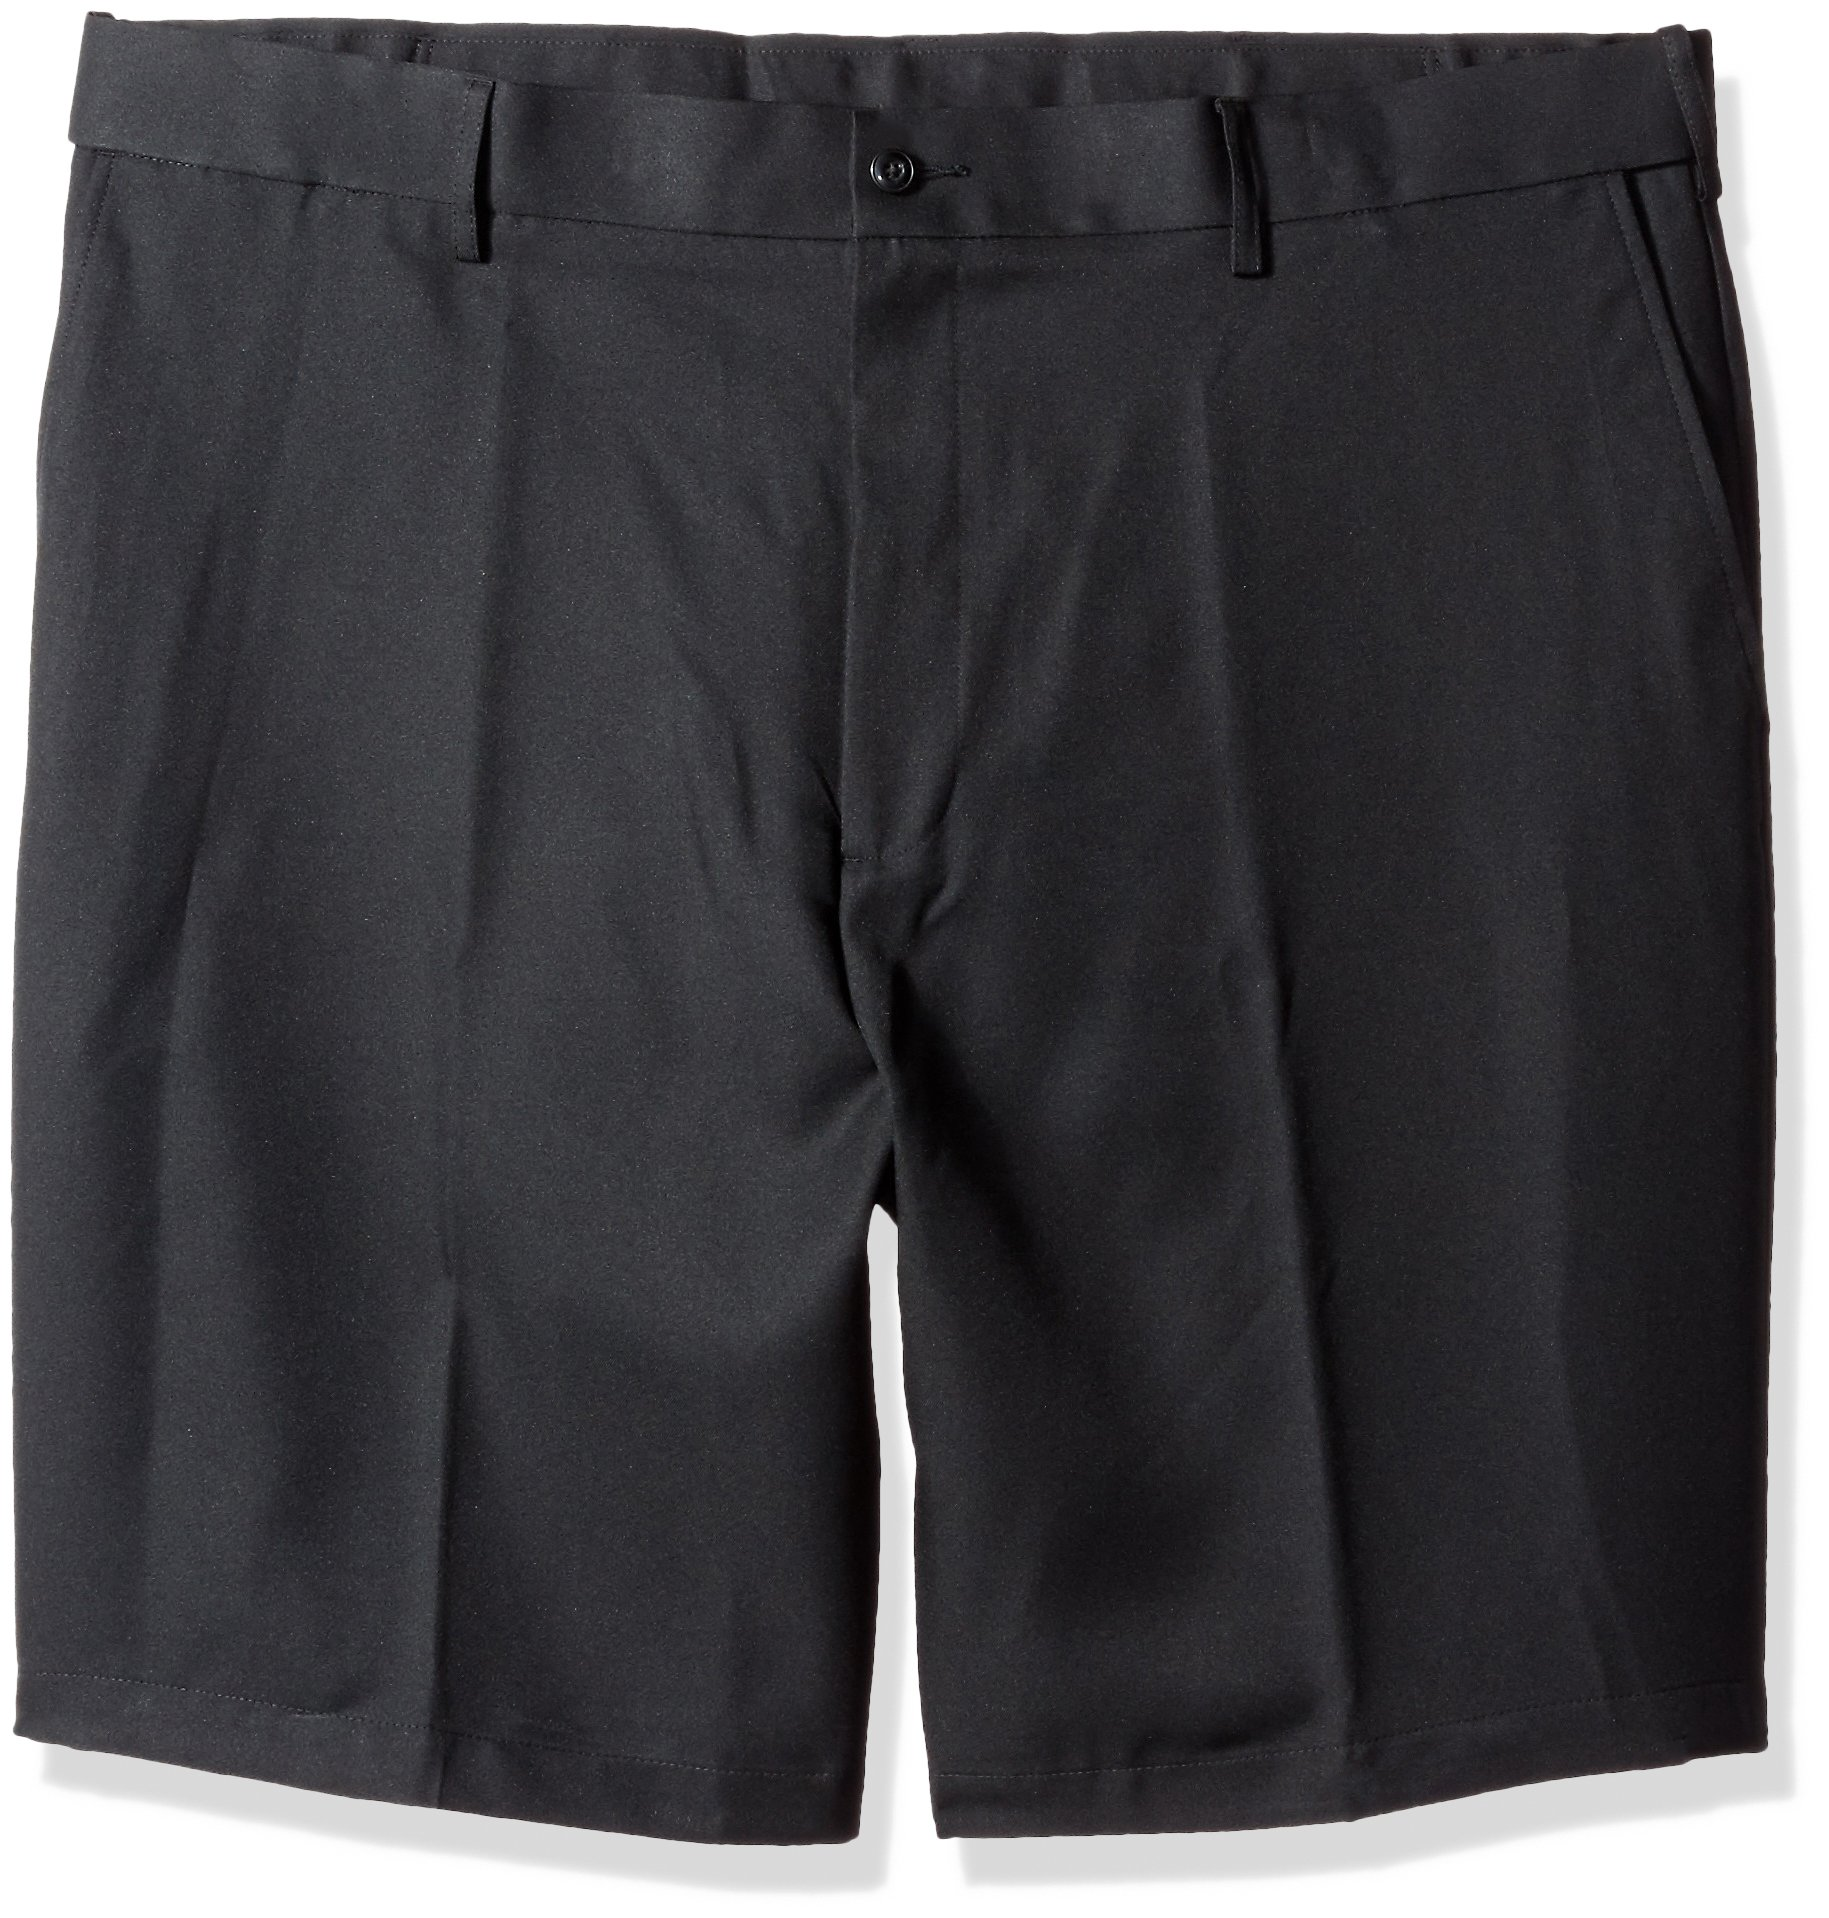 8f72bab98 Best Rated in Men's Golf Shorts & Helpful Customer Reviews - Amazon.com